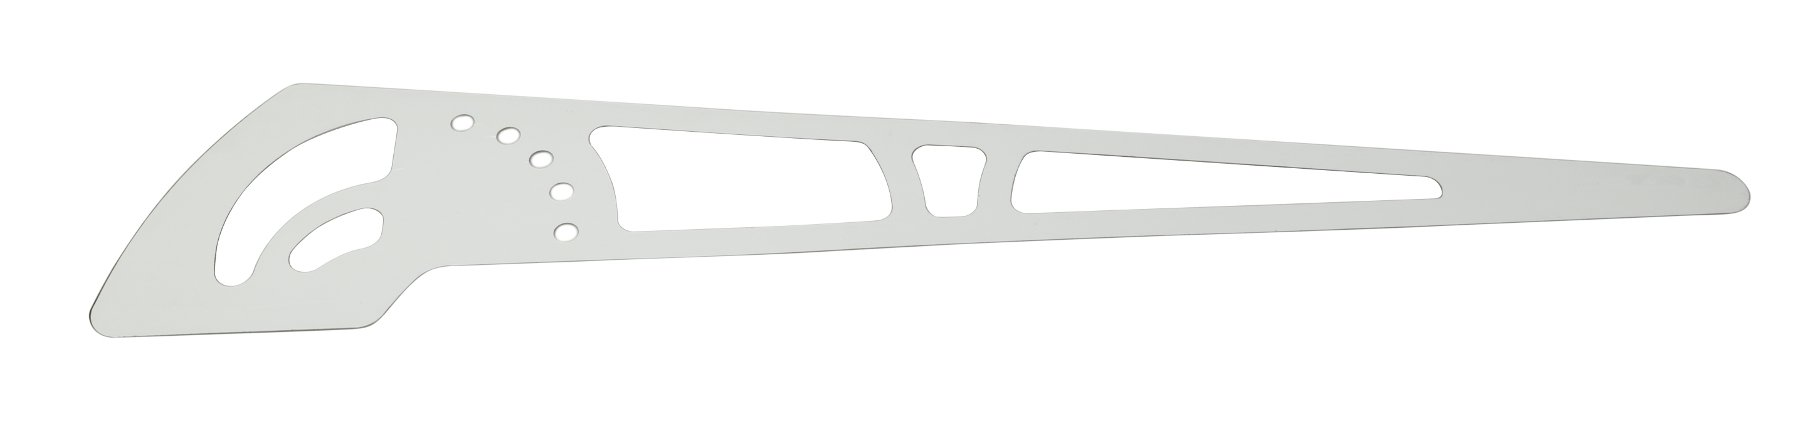 GB8 Left Metal Side Trim